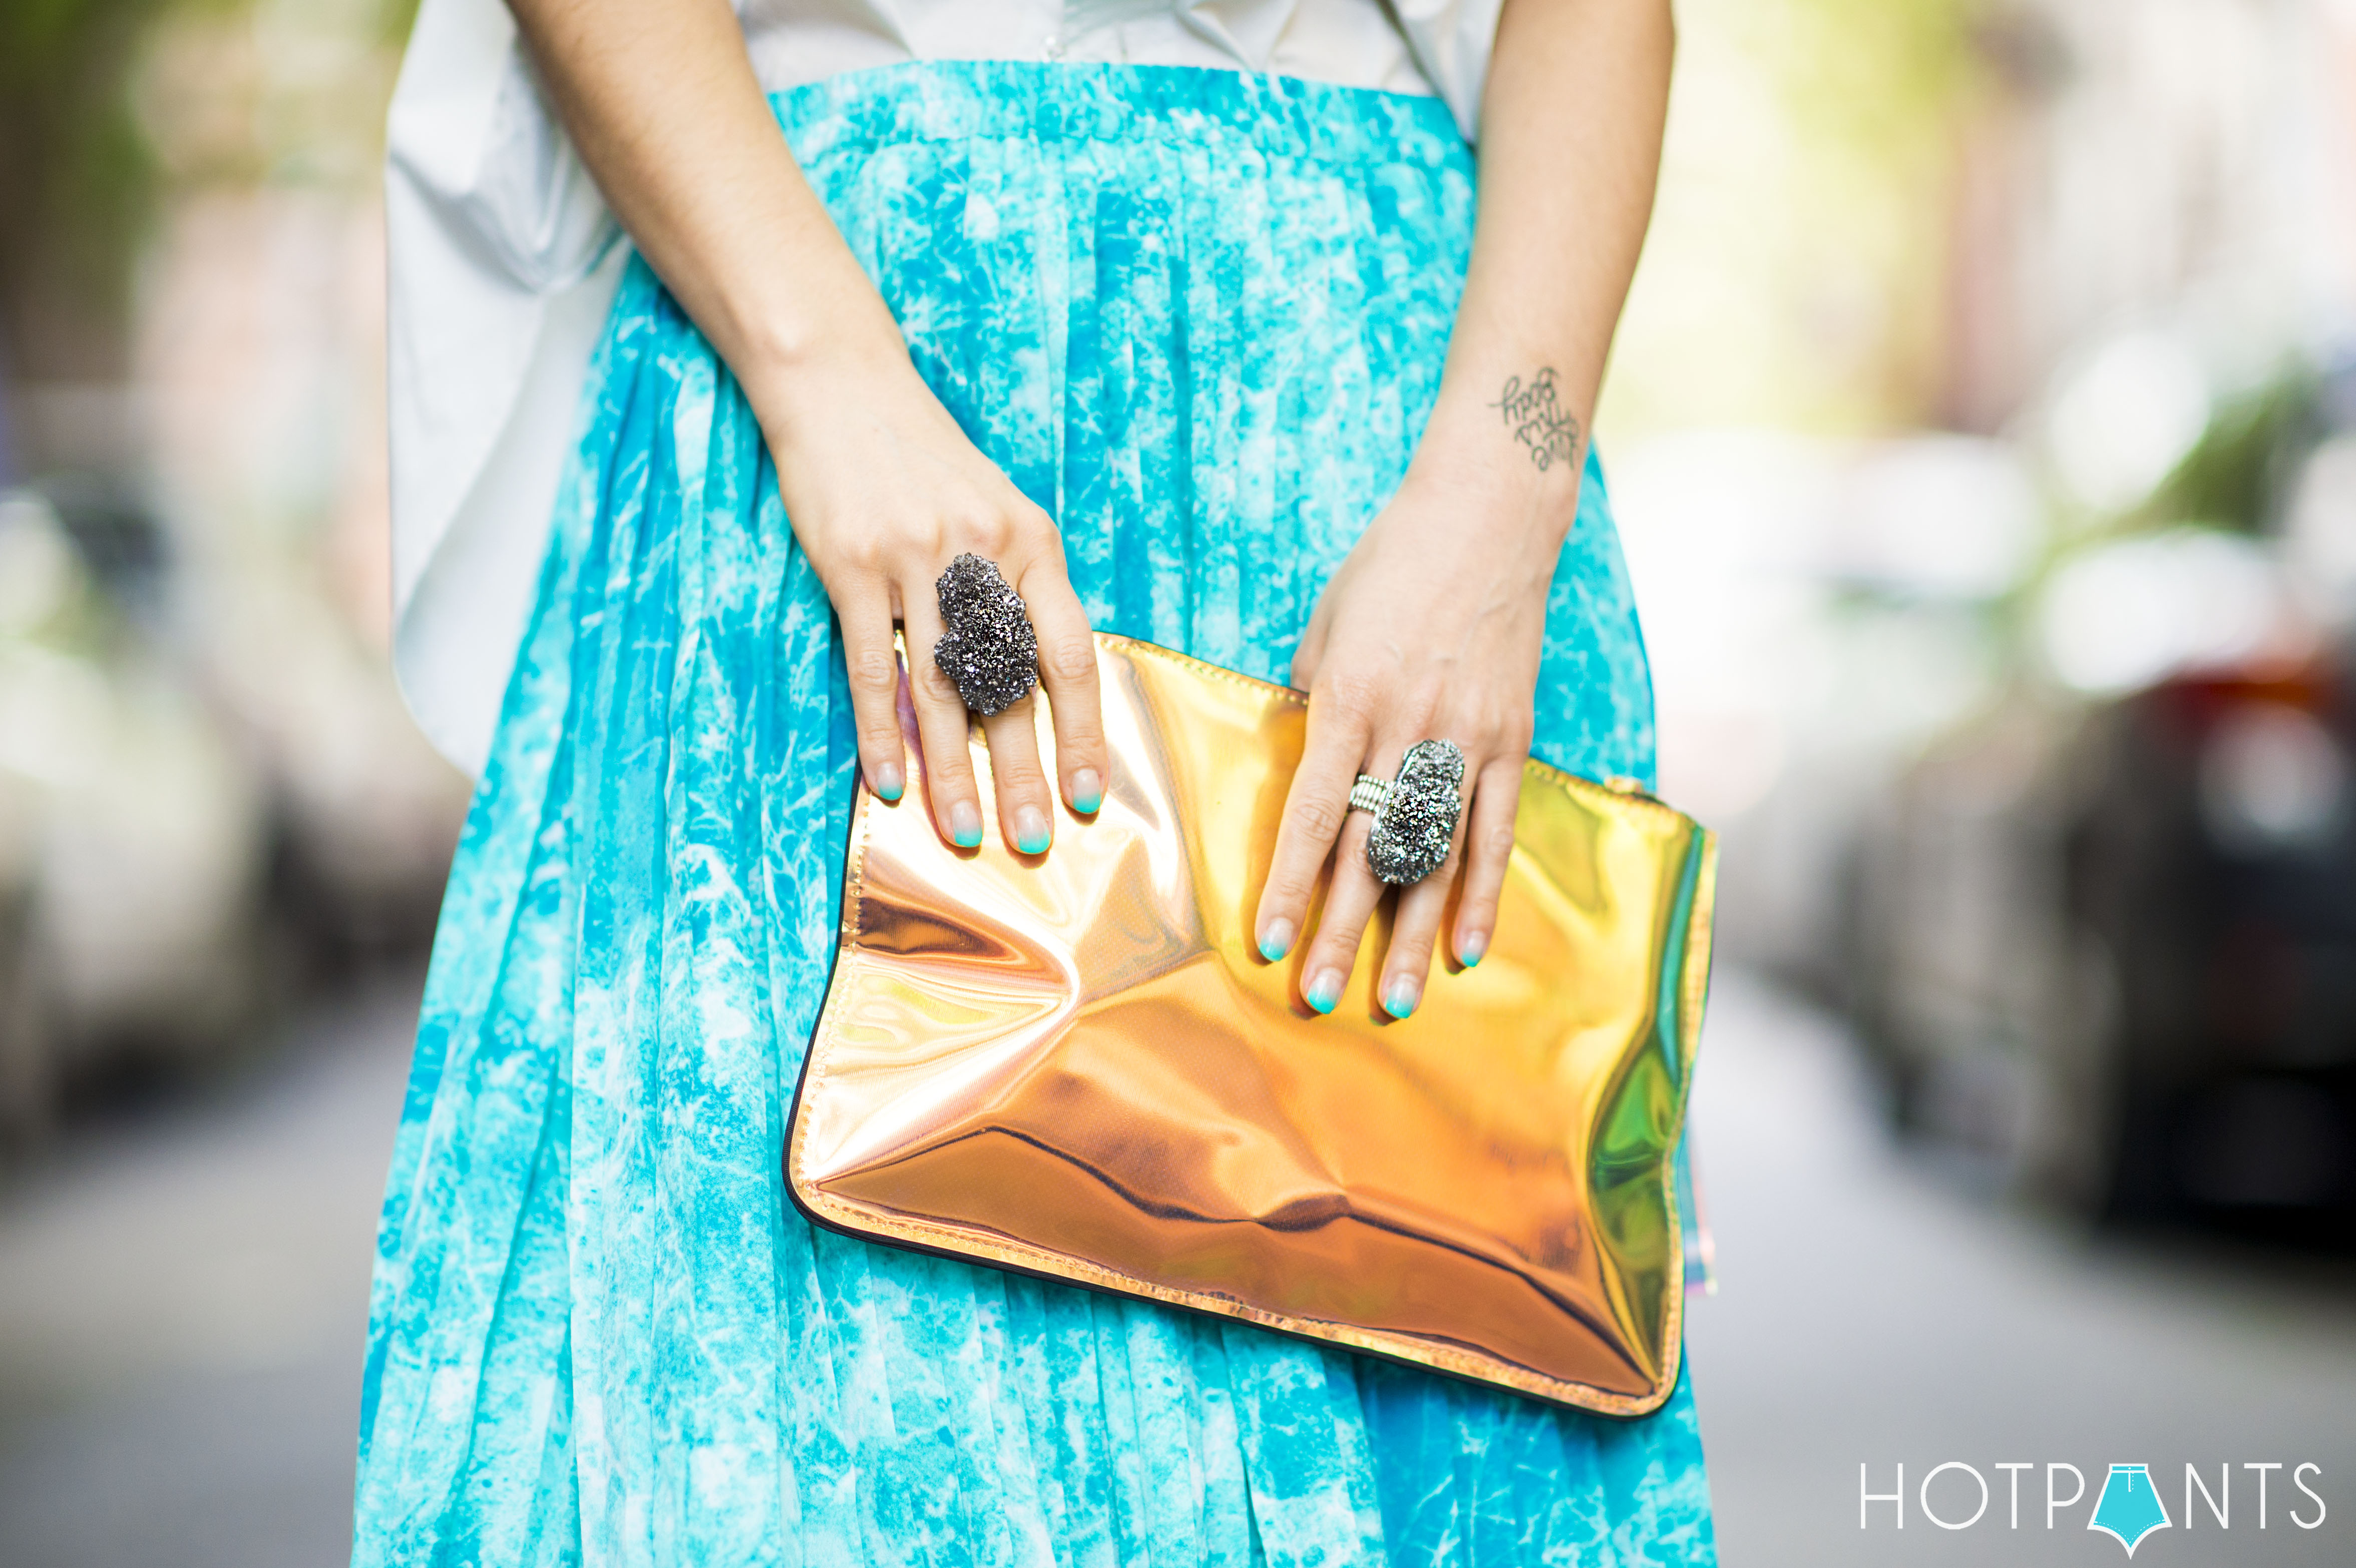 Teal Turquoise Tie Dye Maxi Skirt Spring NYC Streetstyle